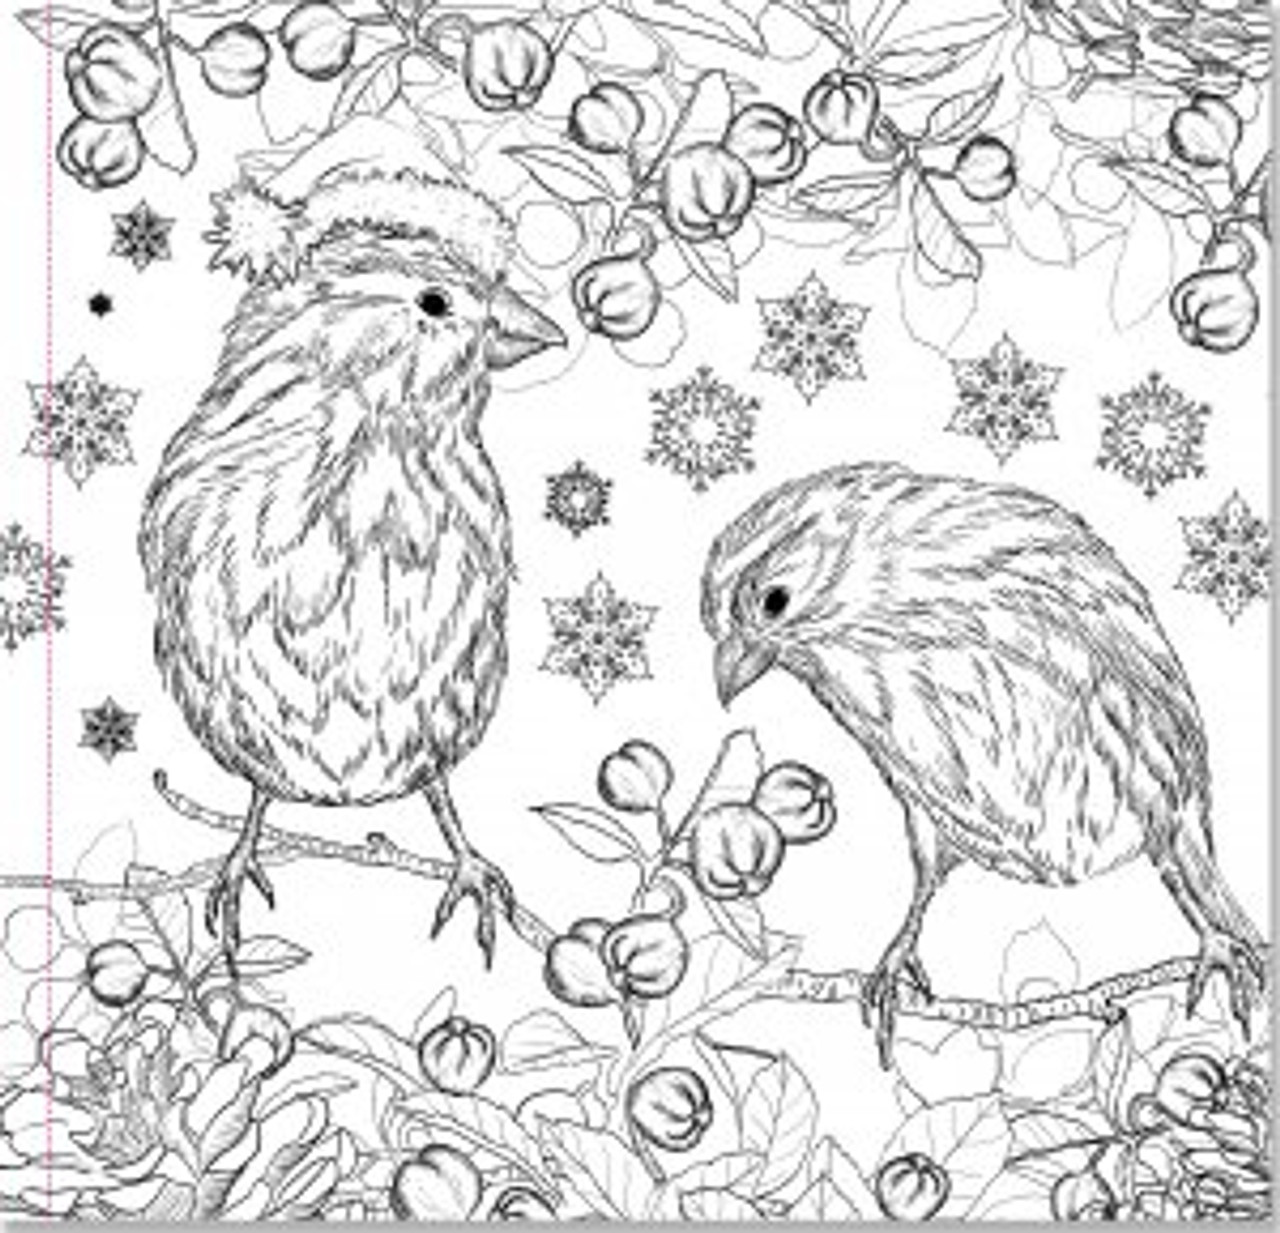 - Studio Series By Peter Pauper Press: Christmas Designs Artist's